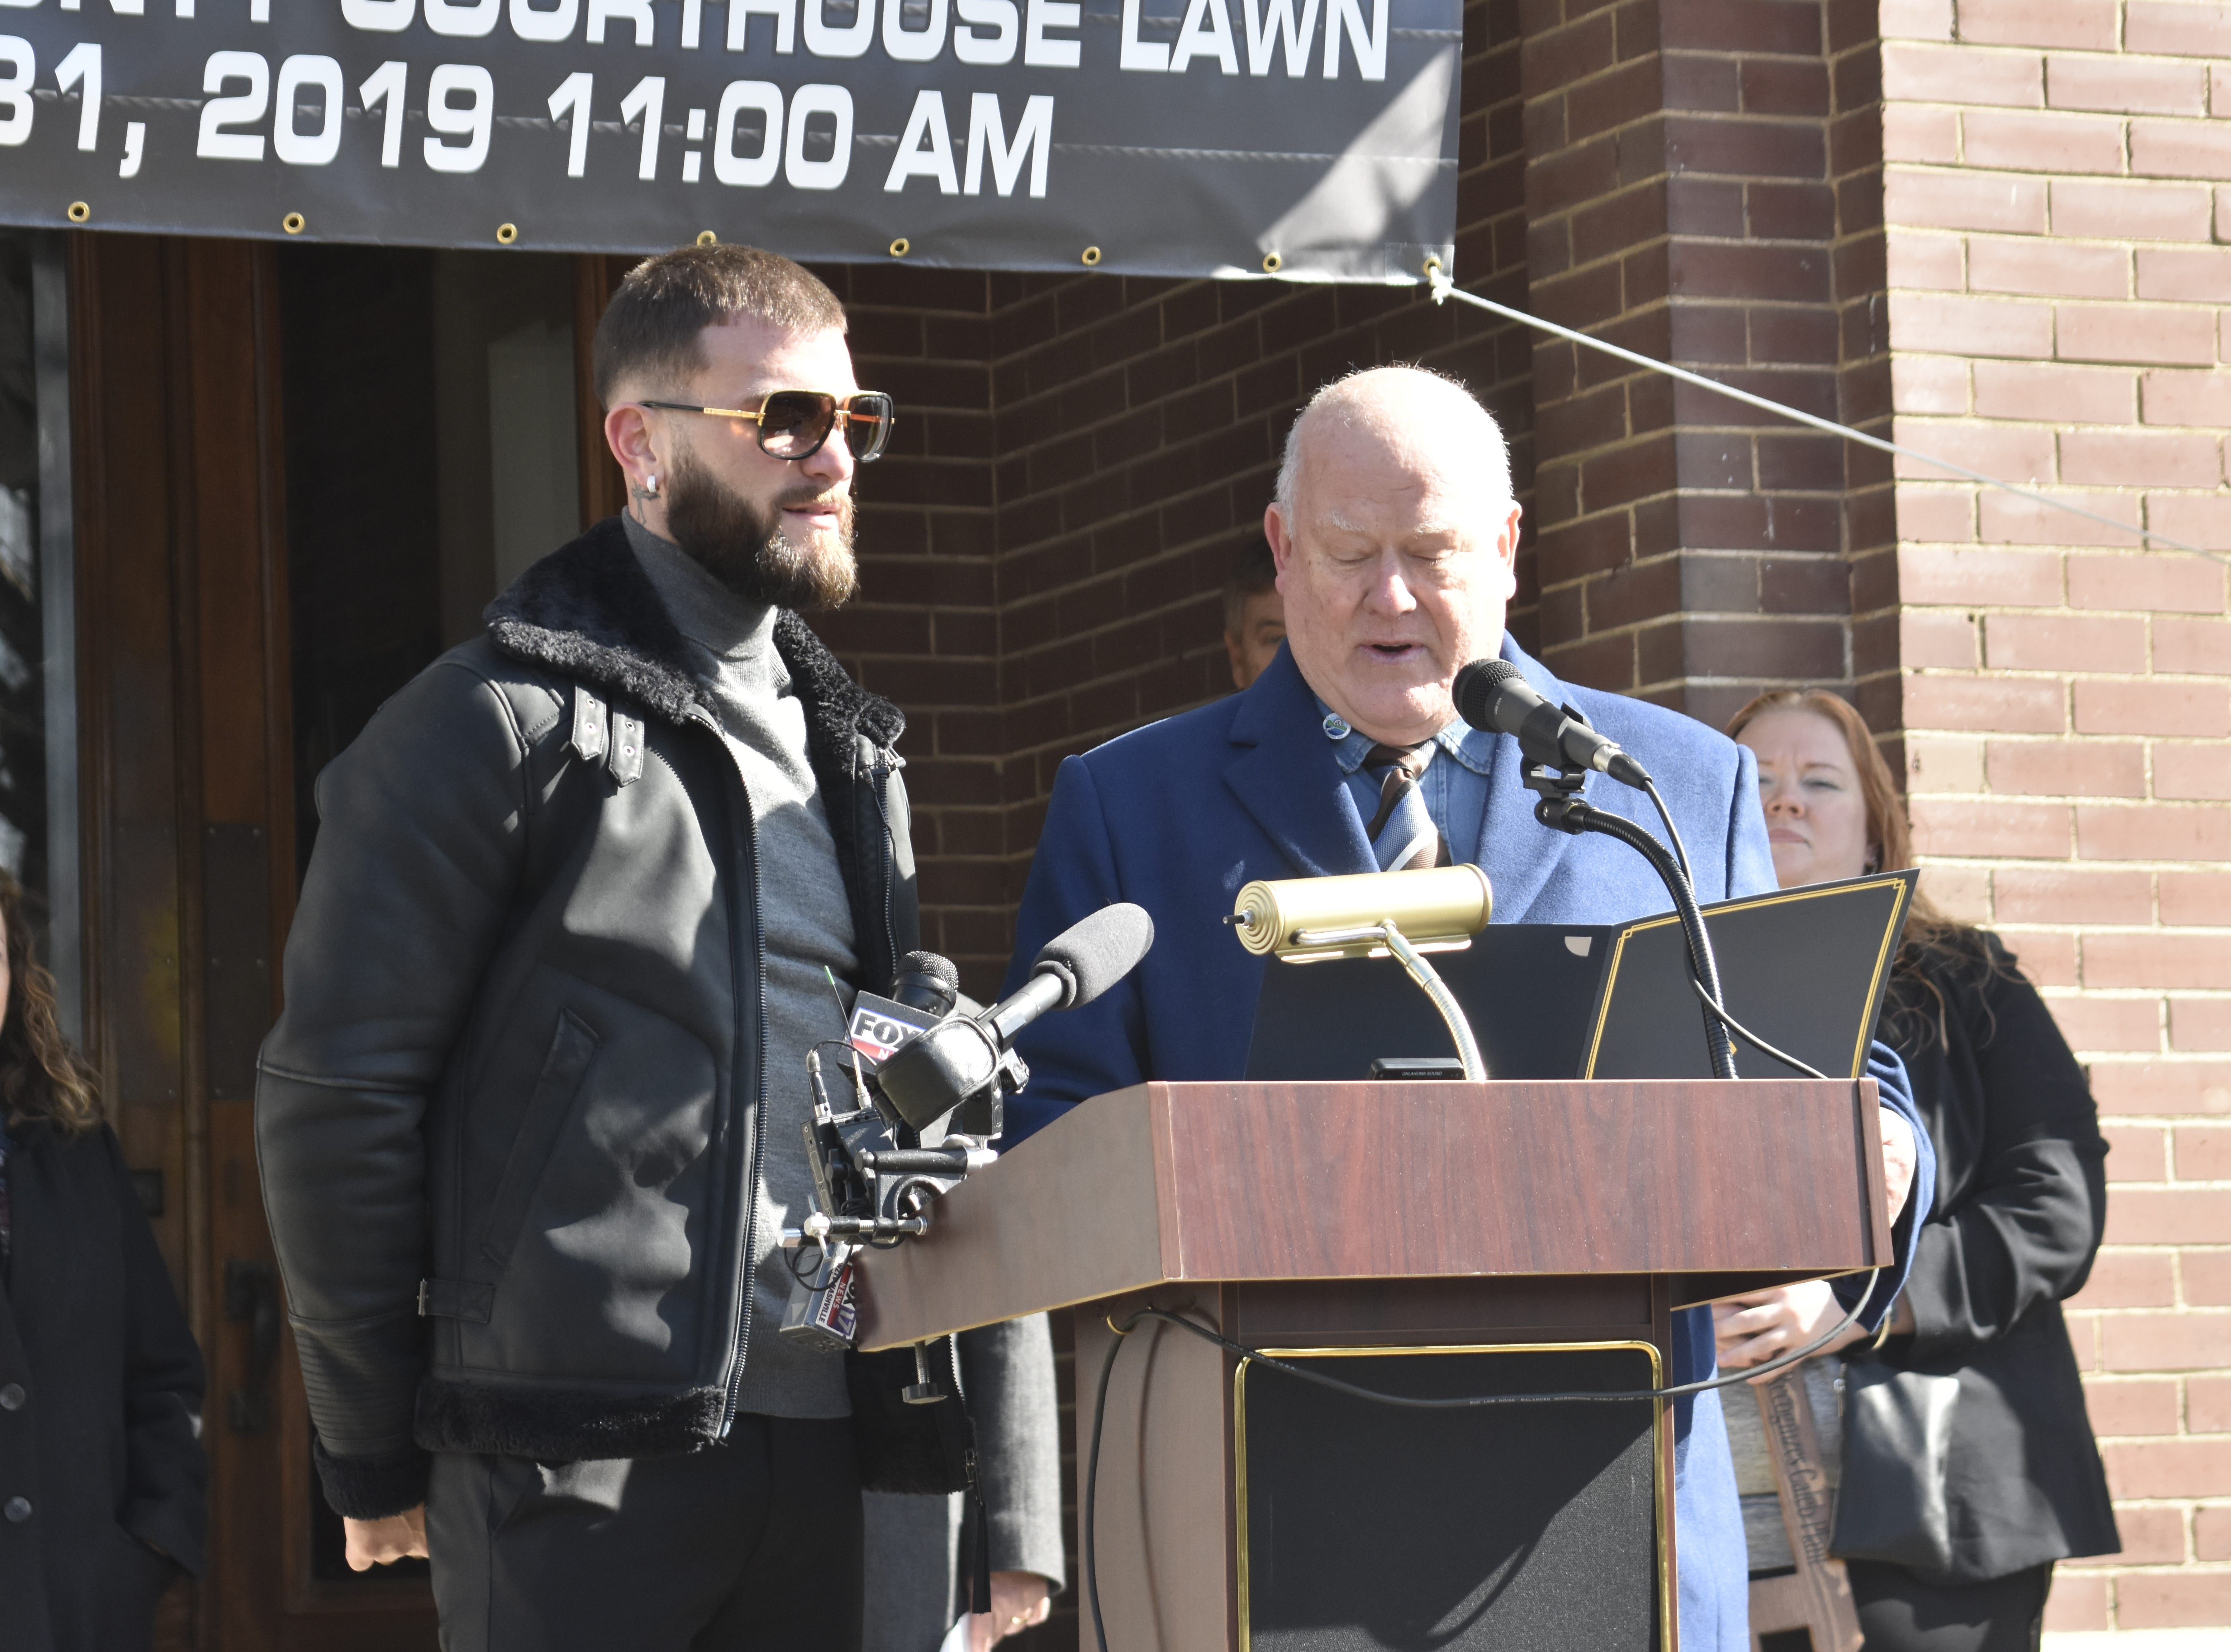 """Ashland City Mayor Steve Allen read a proclamation for Caleb """"Sweethands"""" Plant at the Cheatham County Courthouse on Thursday, Jan. 31."""